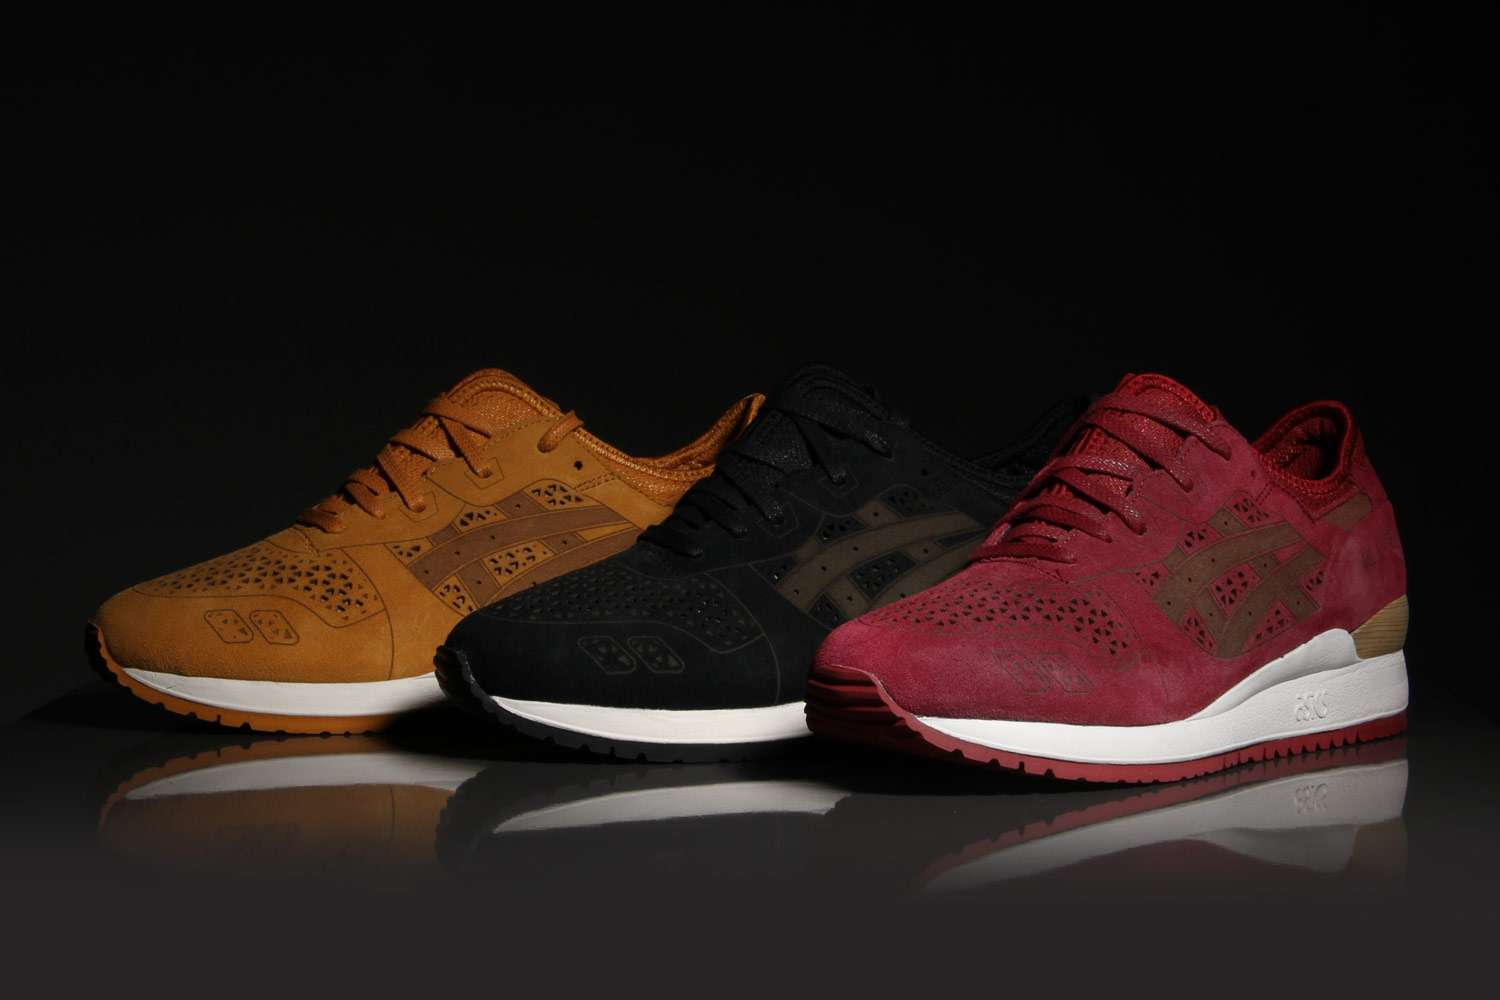 Asics Suede Low Top Sneakers 100% original sale online nwDiV